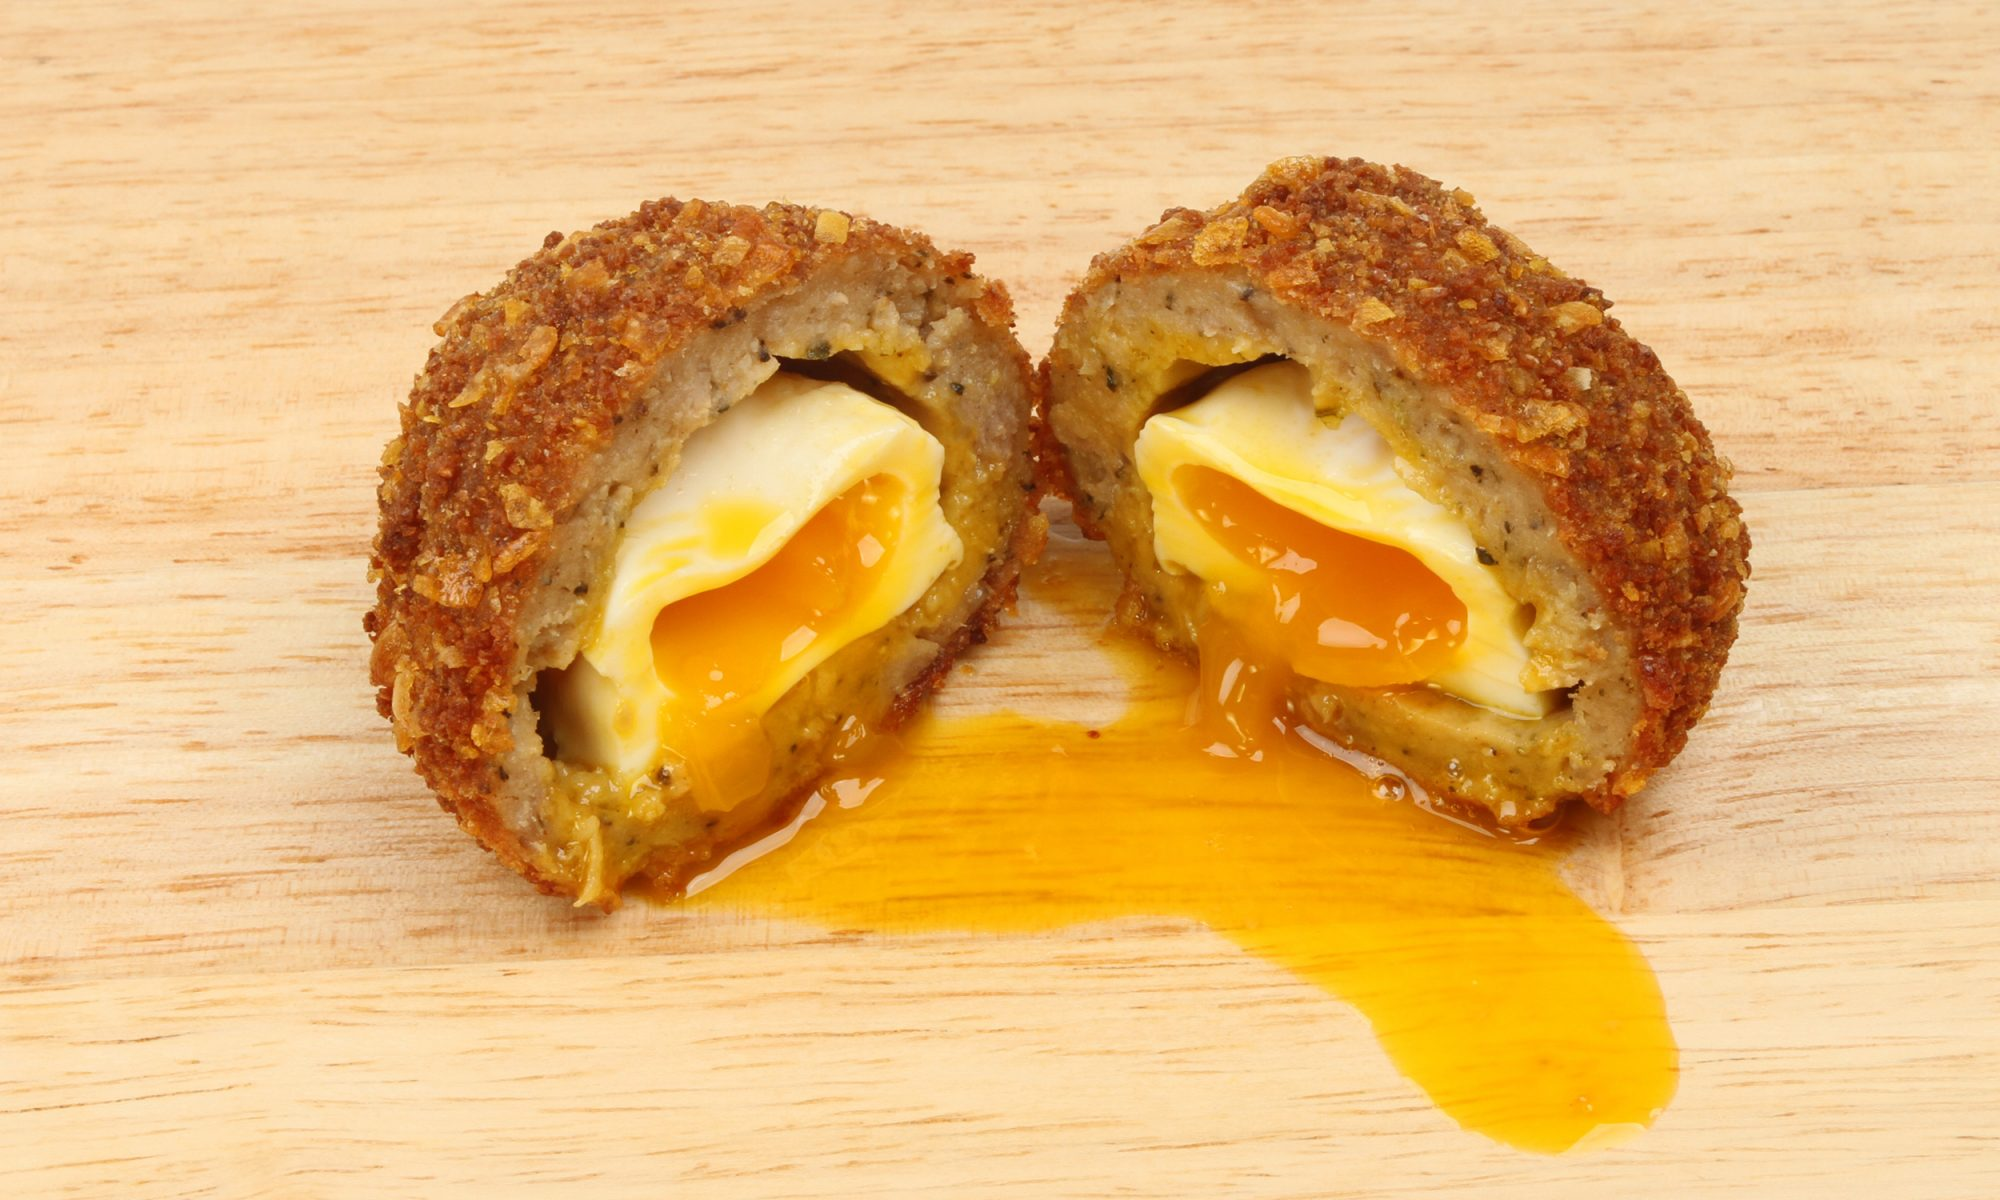 Scotch egg split open